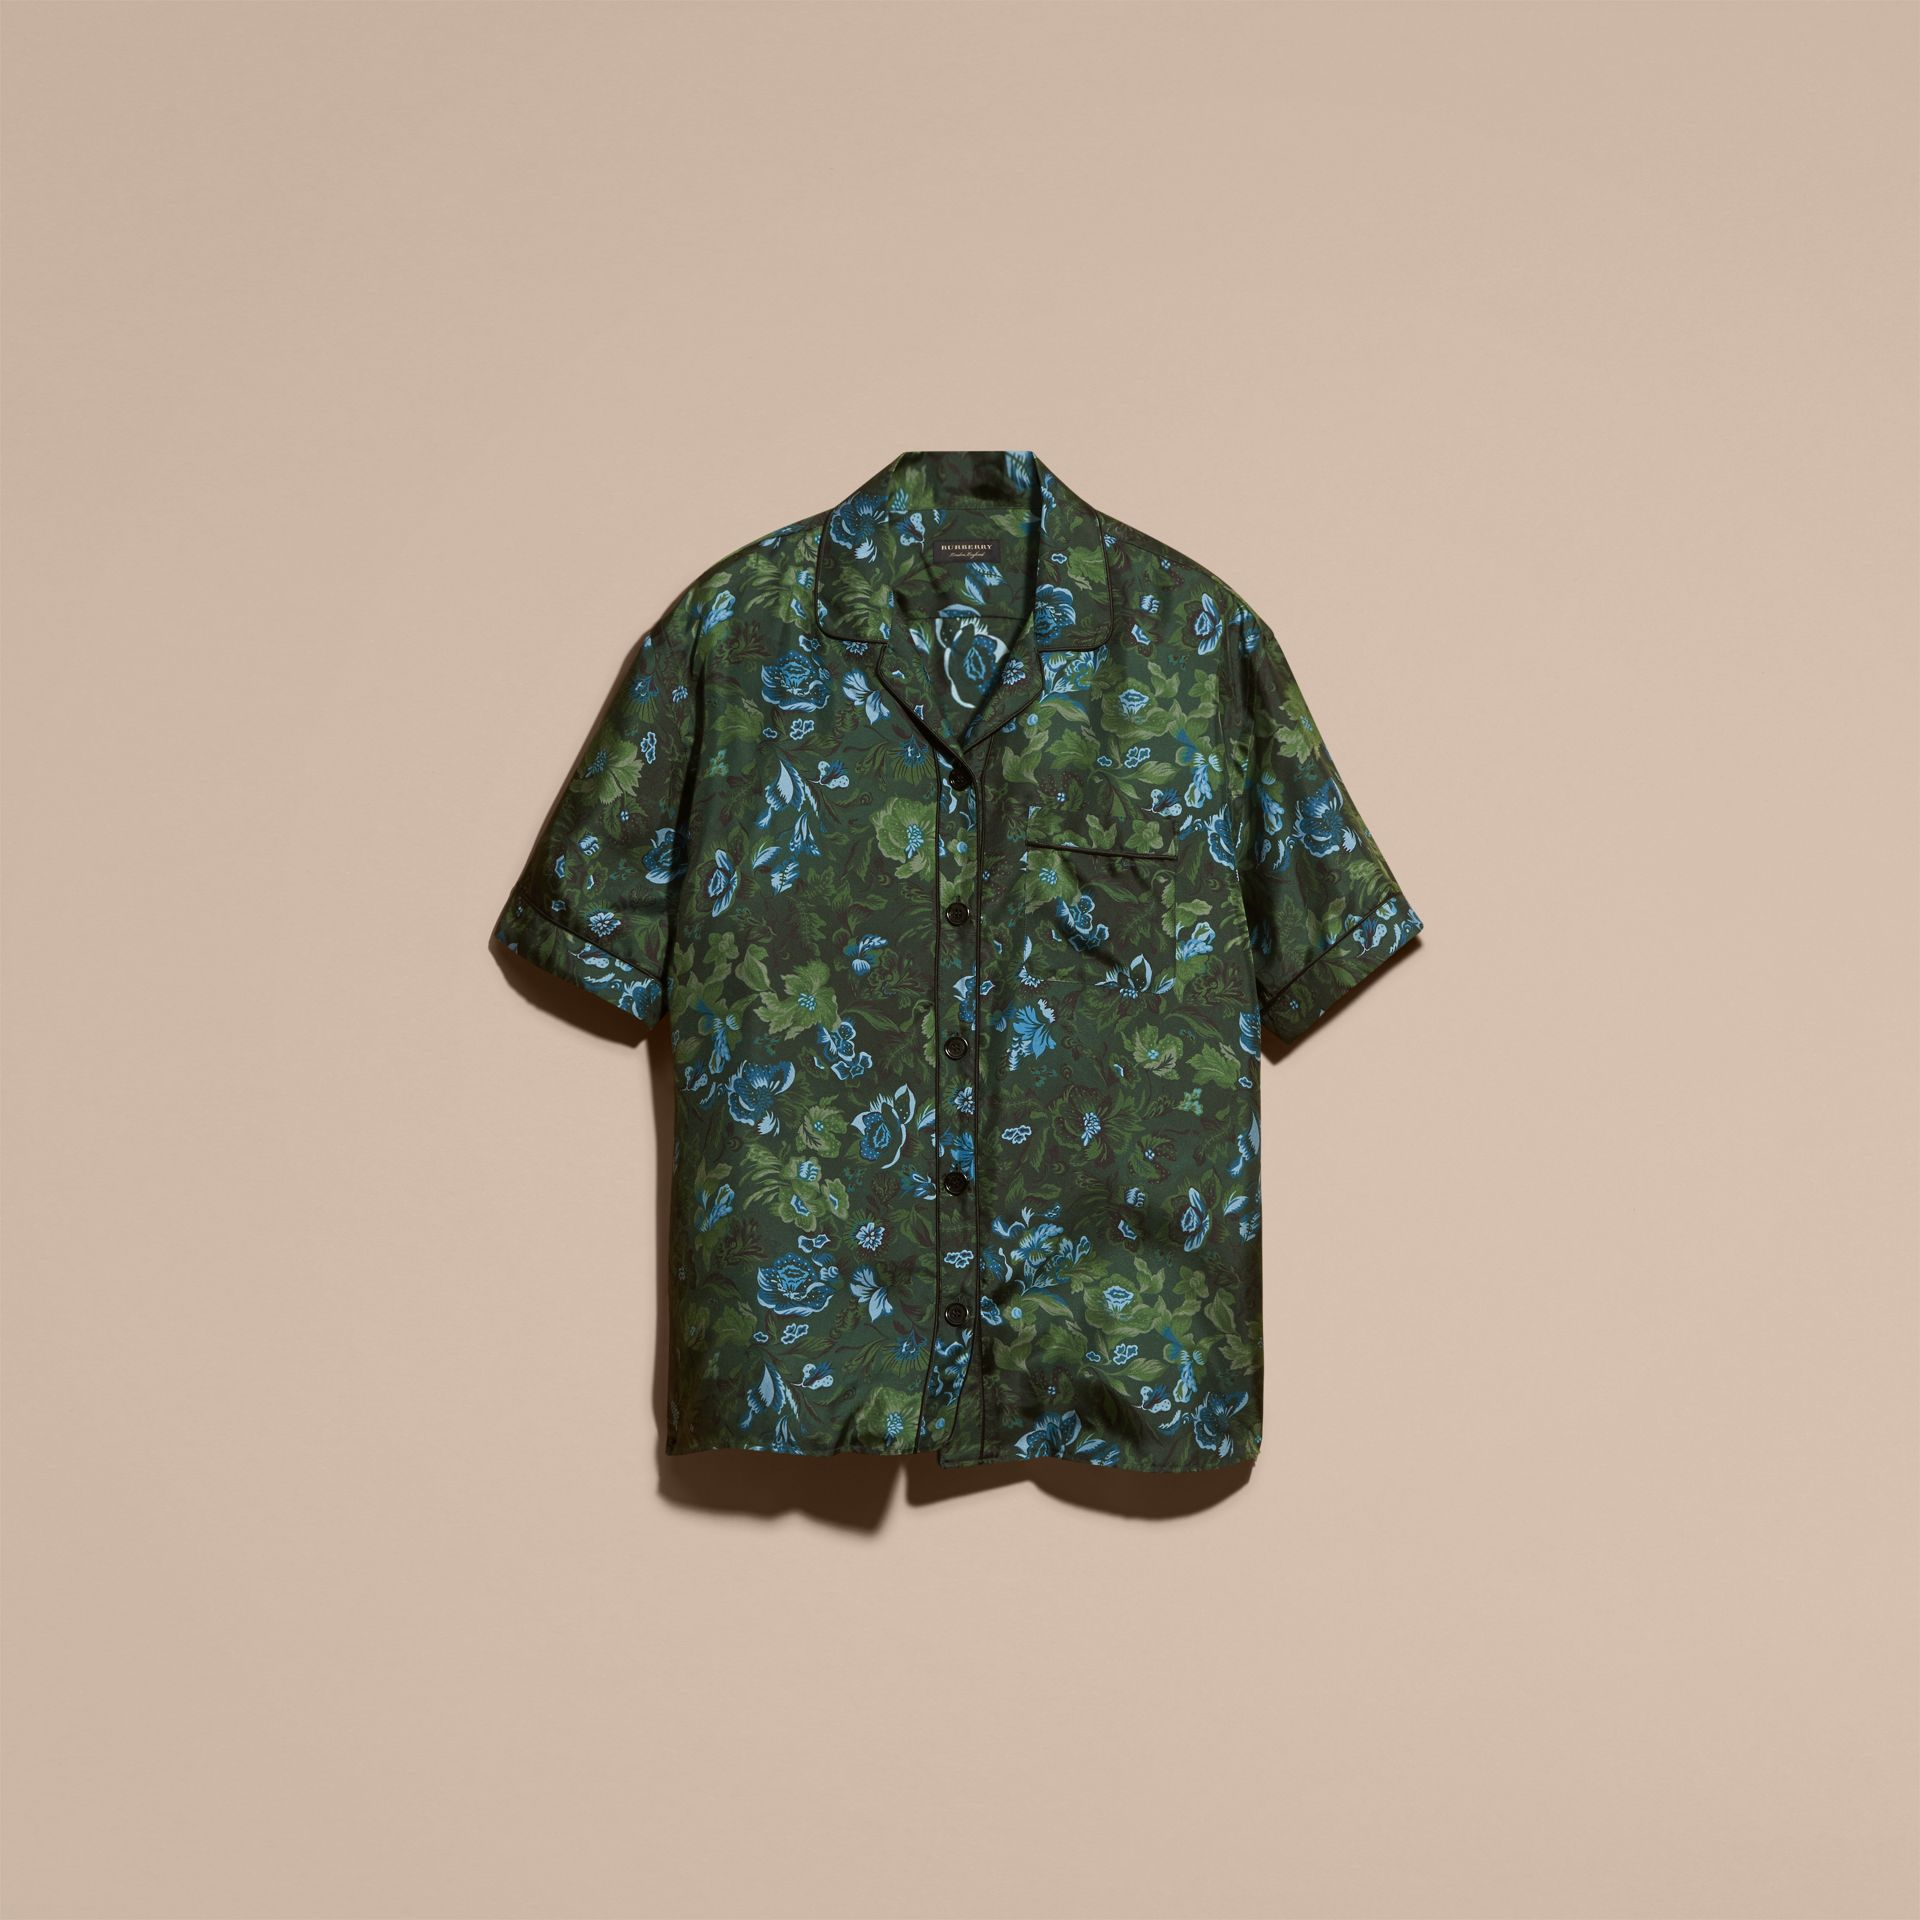 Forest green Short-sleeved Floral Print Silk Pyjama-style Shirt Forest Green - gallery image 4